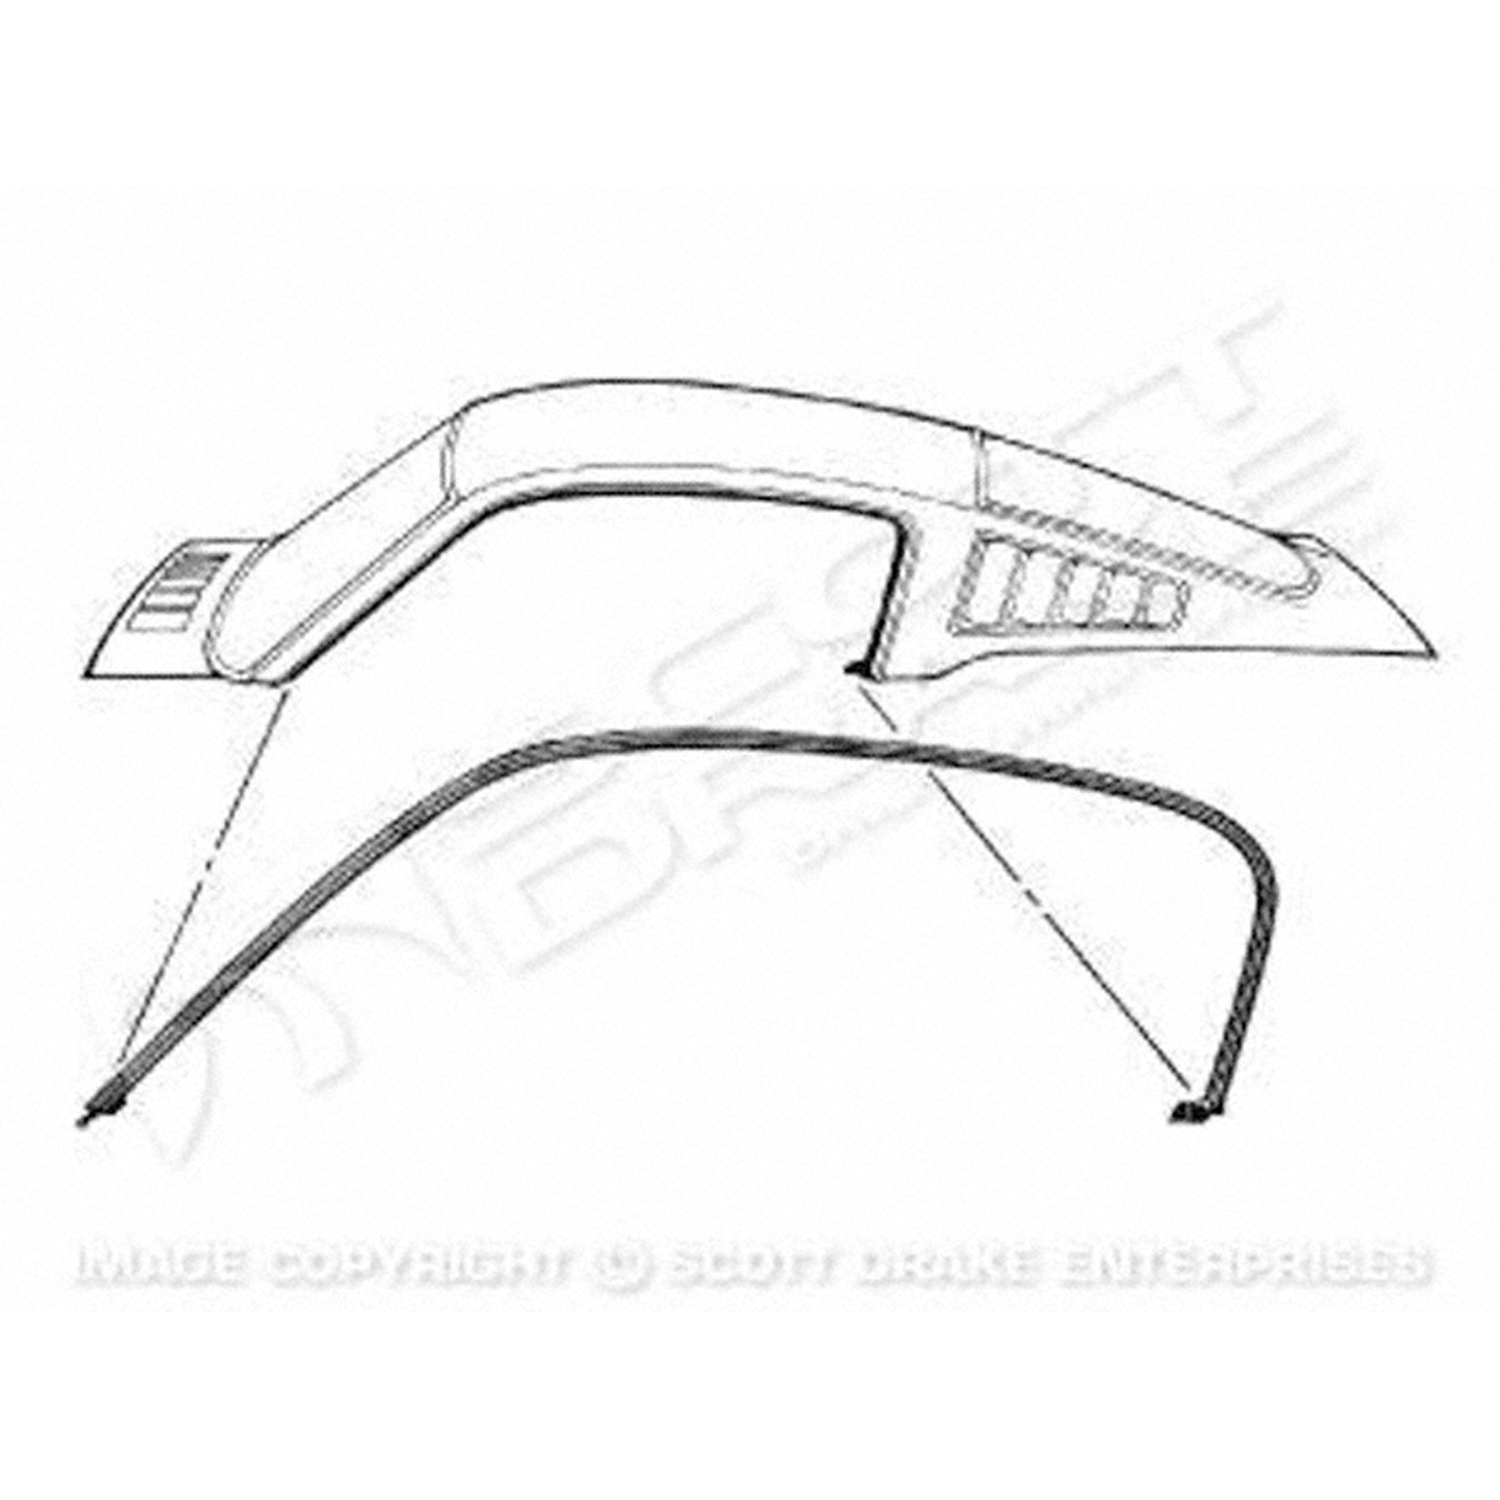 Roof Weatherstrips 1965-1966 Ford Mustang 3020-537-65P